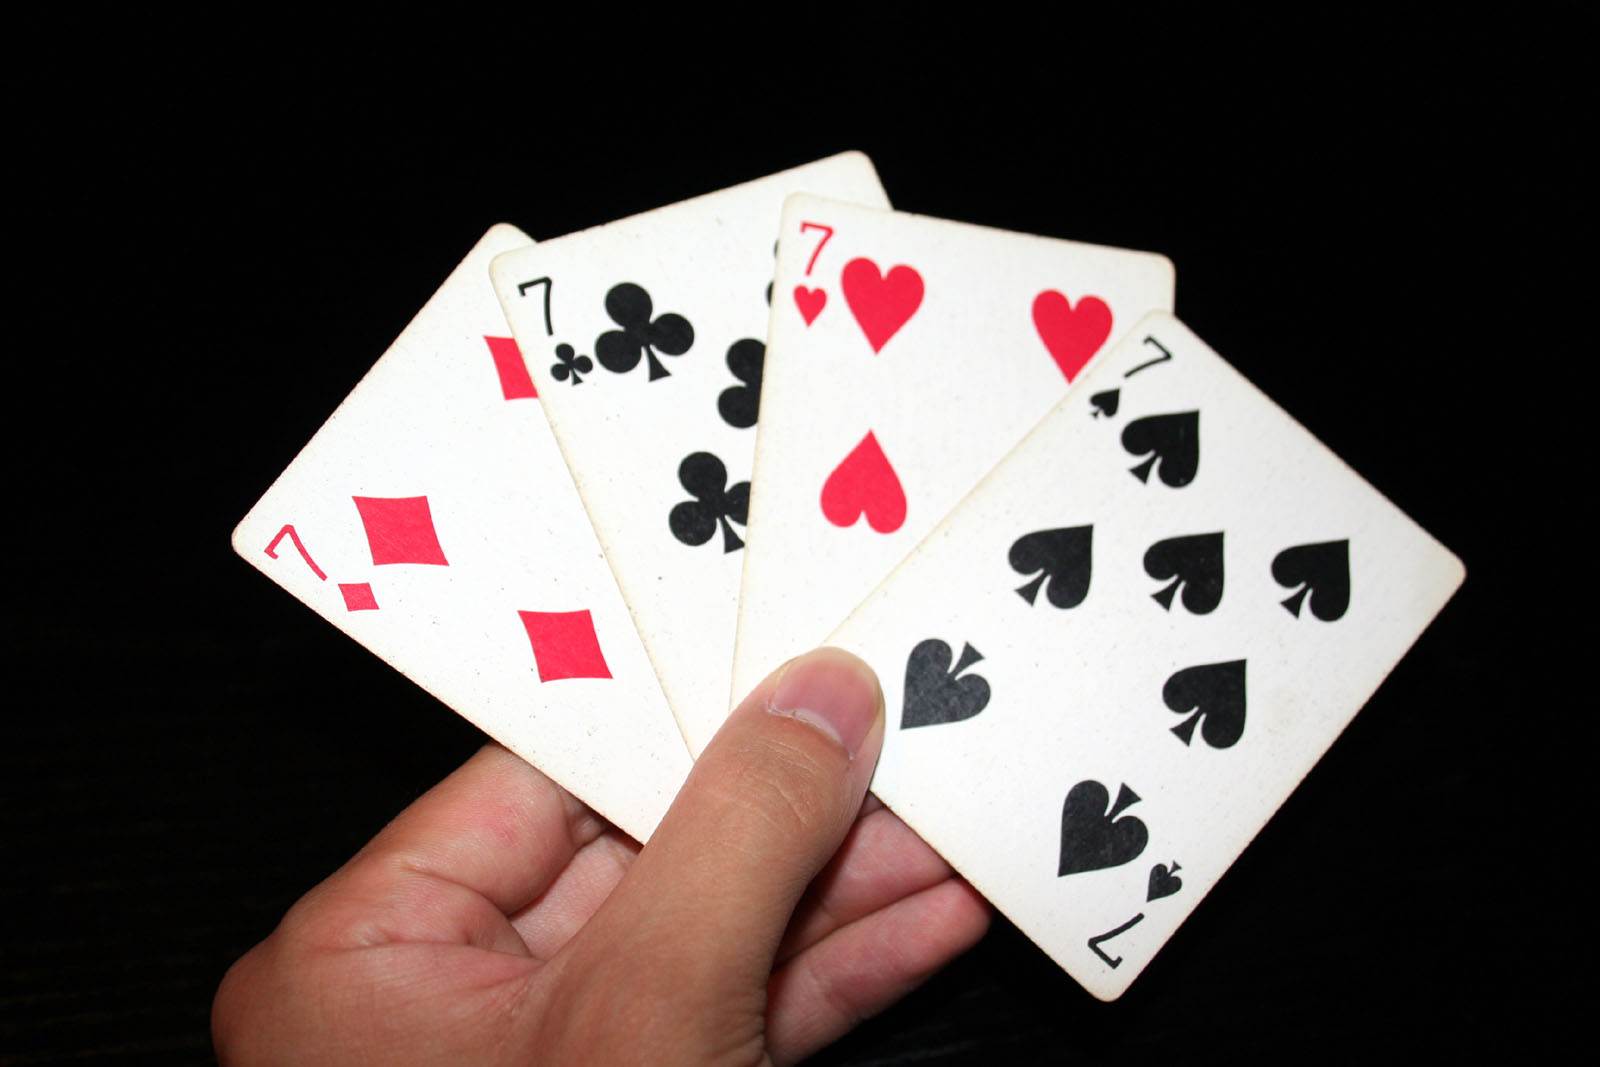 https://upload.wikimedia.org/wikipedia/commons/8/80/7_playing_cards.jpg